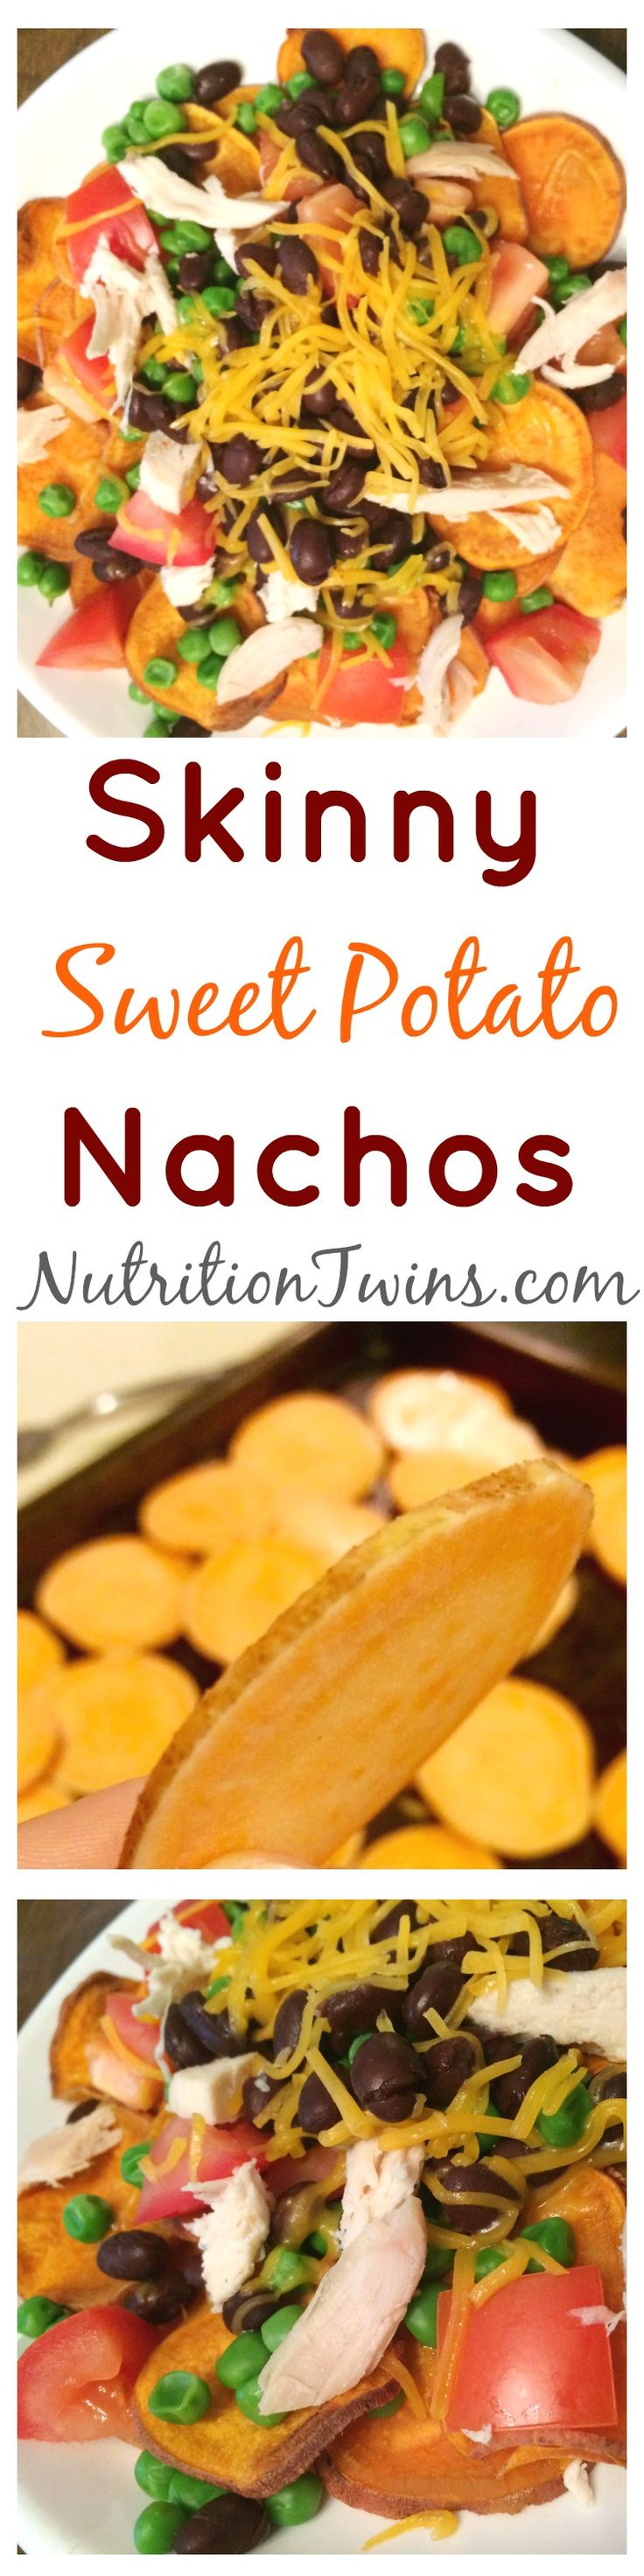 Sweet Potato Nachos | Healthy Entire Meal | Only  328 Calories | Protein Packed & Satisfying | Packed with Fiber | For Nutrition & Fitness Tips, and RECIPES please SIGN UP for our FREE NEWSLETTER www.NutritionTwins.com